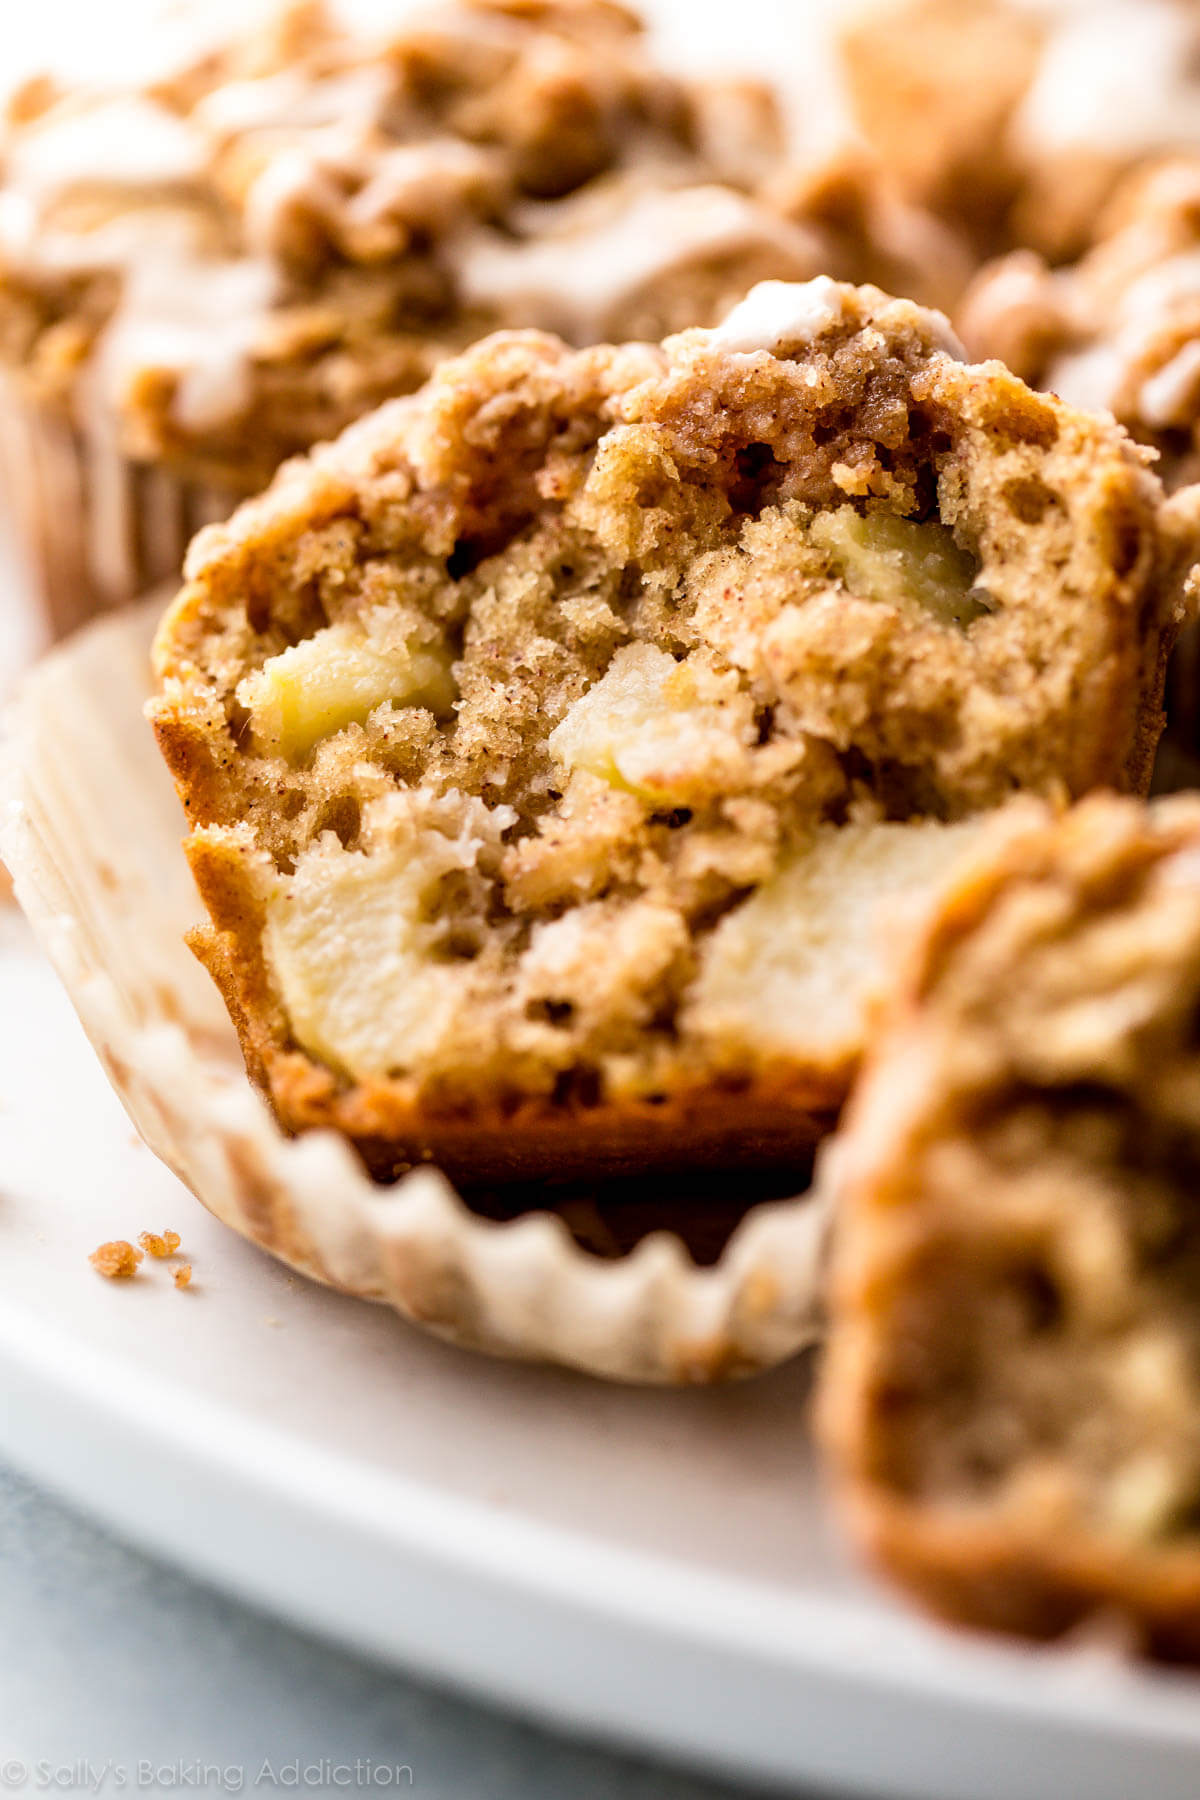 Apple Crumb Muffins are bursting with apples in every single bite! Recipe on sallysbakingaddiction.com